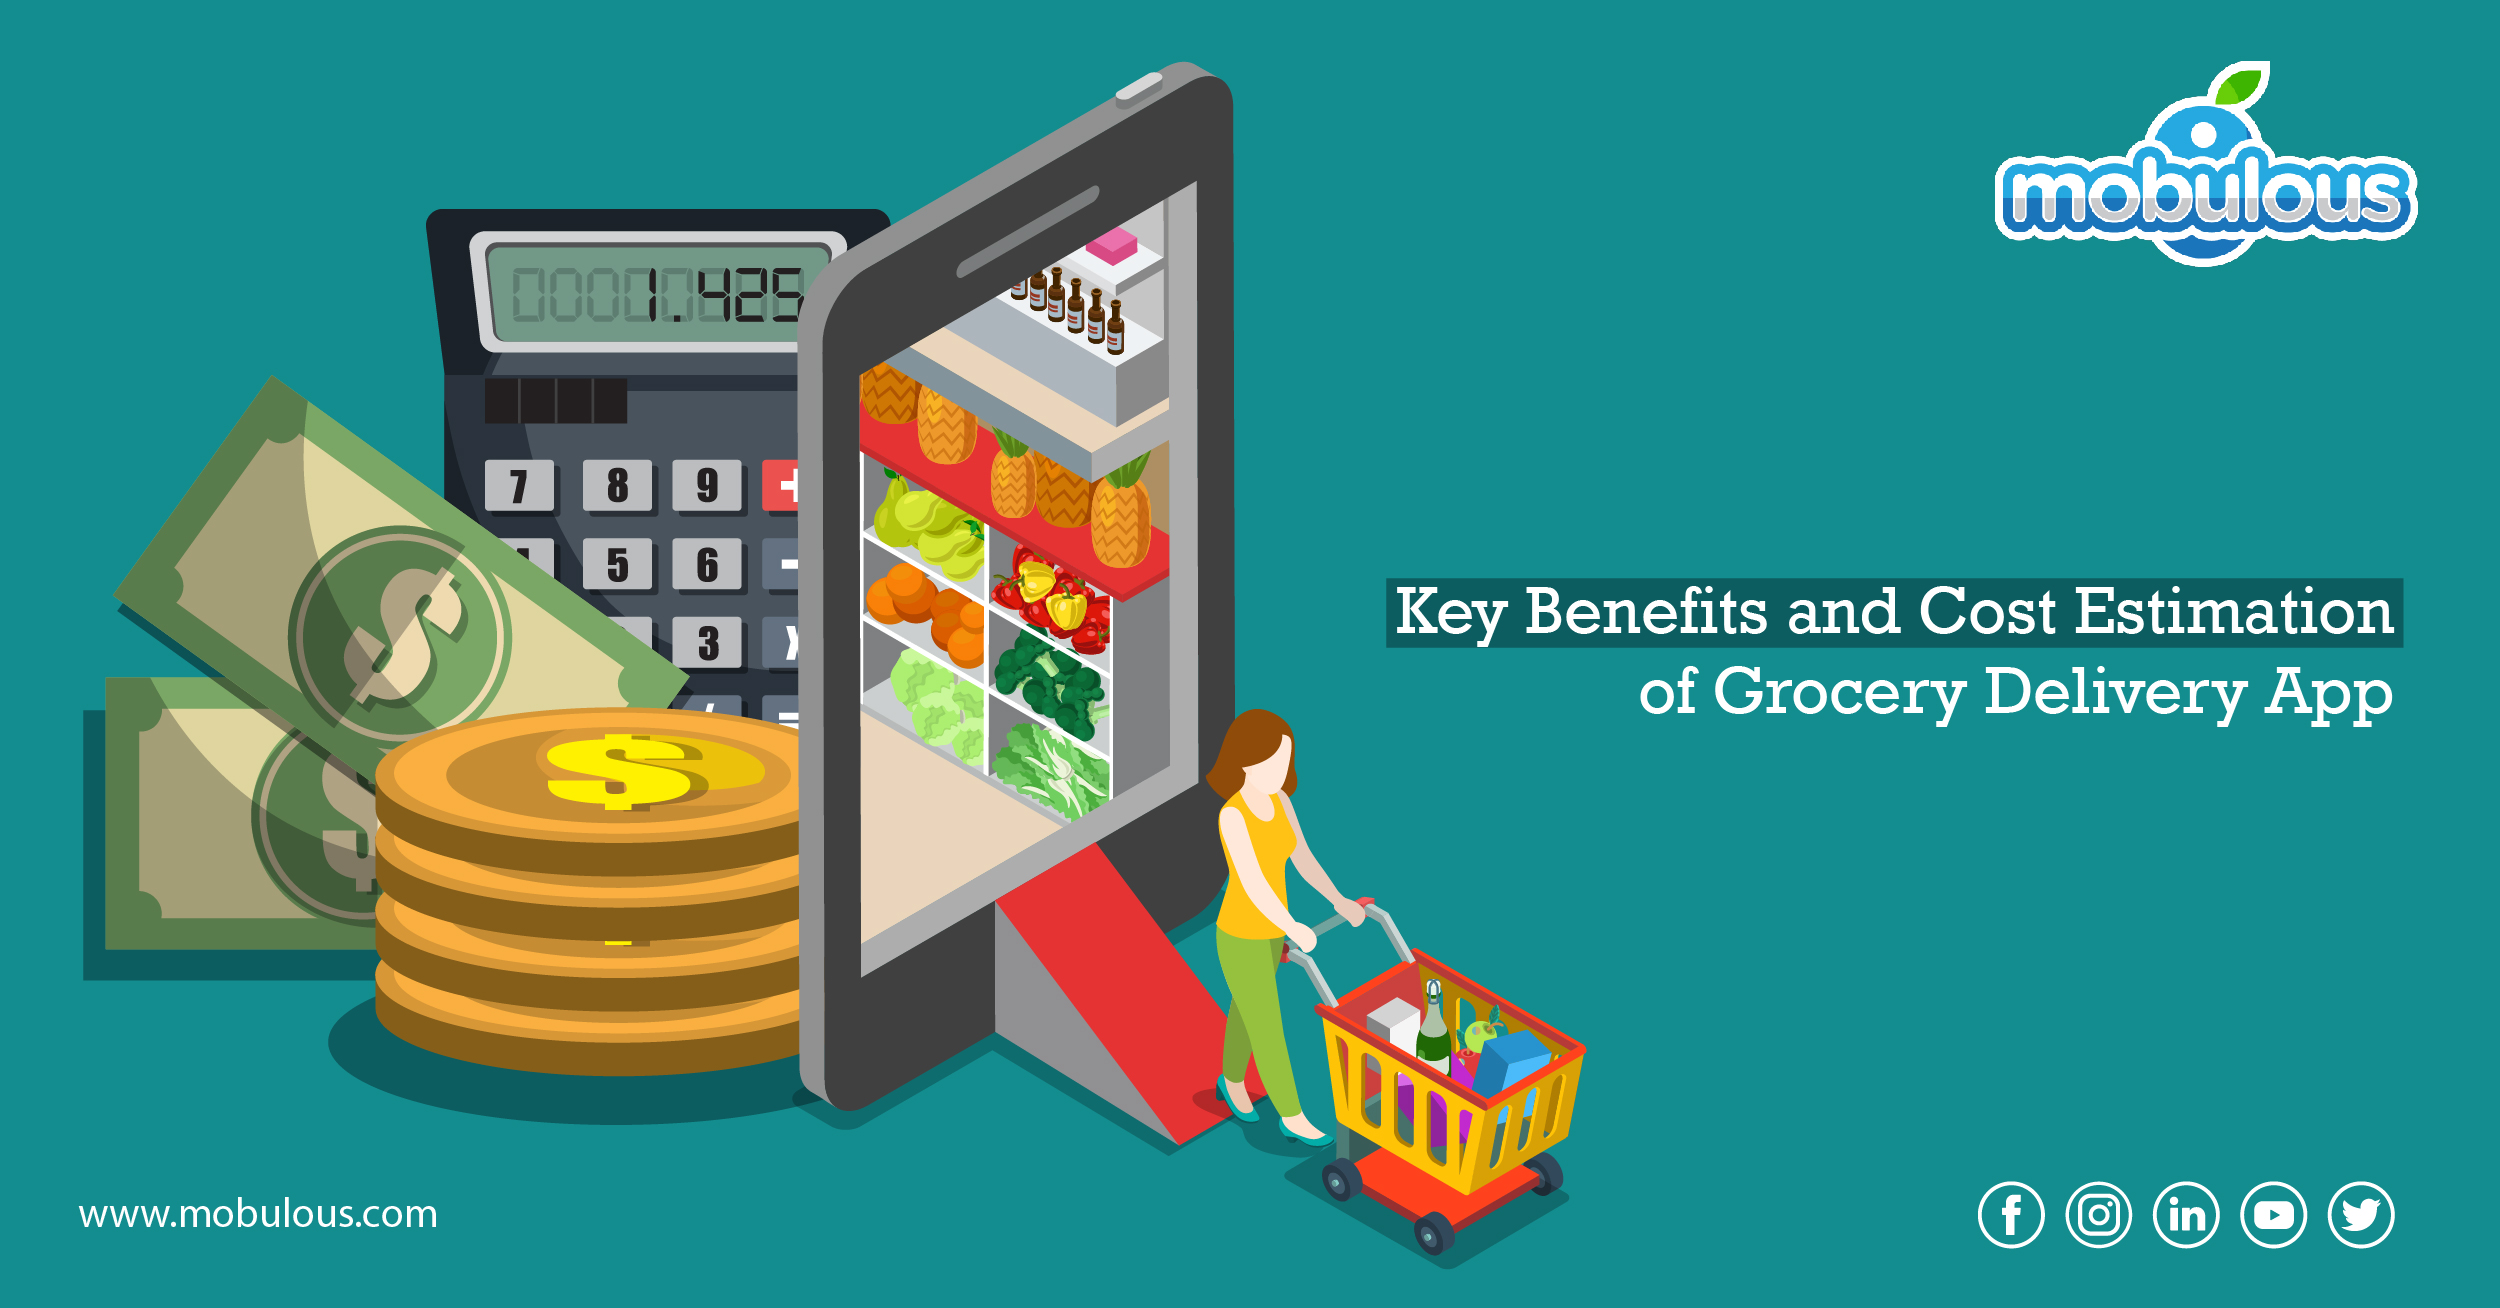 Key Benefits and Cost Estimation of Grocery Delivery App